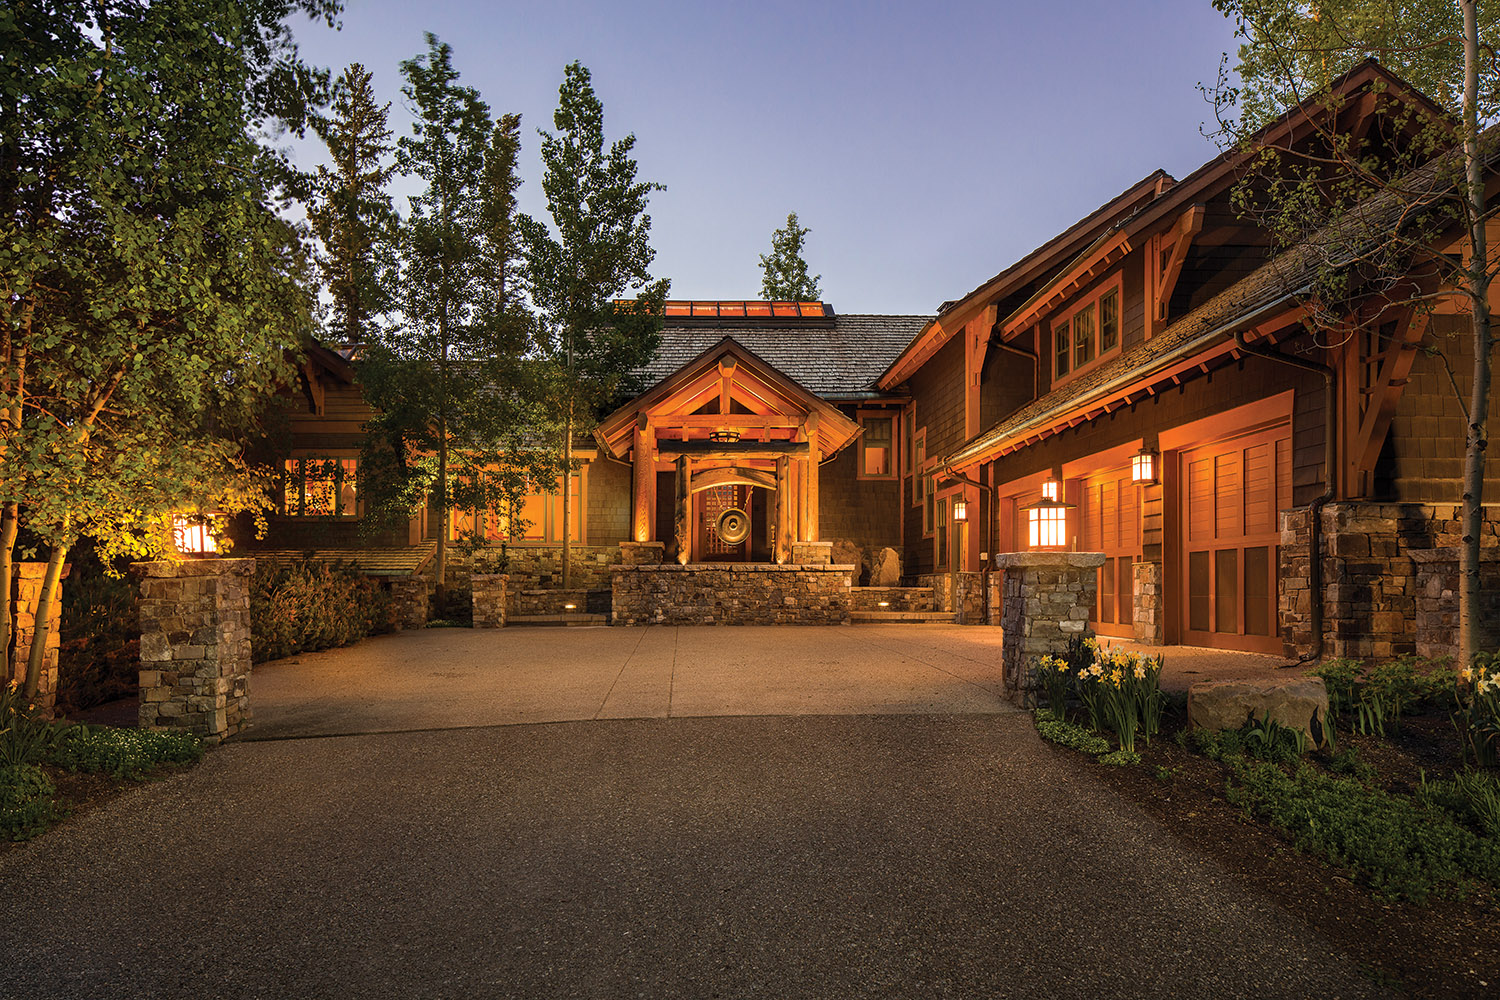 222 San Joaquin Road listed with Bill Fandel for $7,995,000